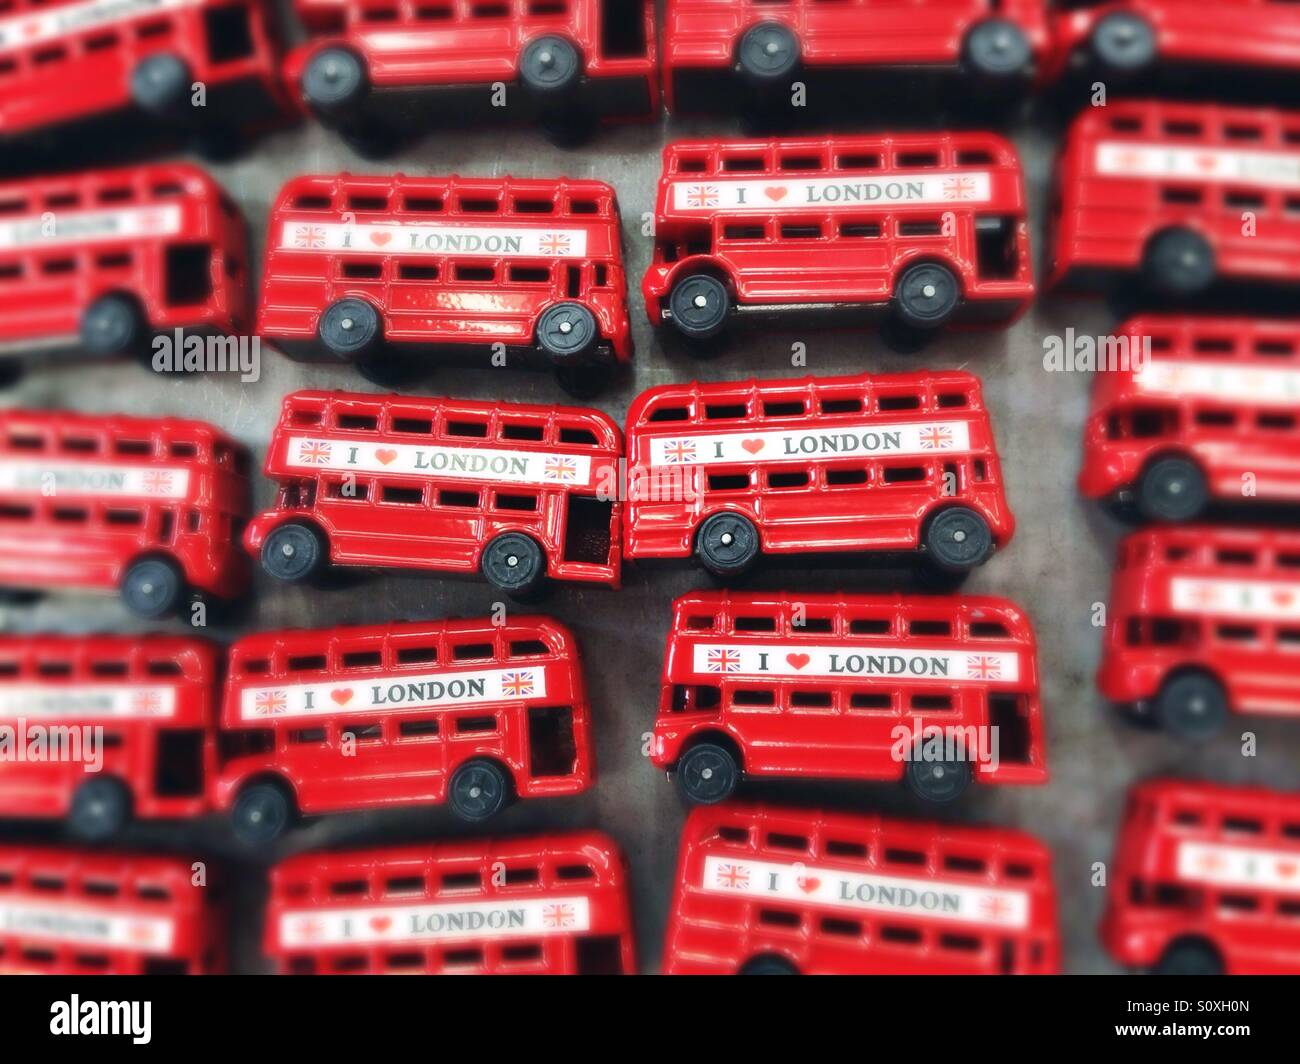 Red busses sold as souvenirs in Camden Town, London, UK - Stock Image